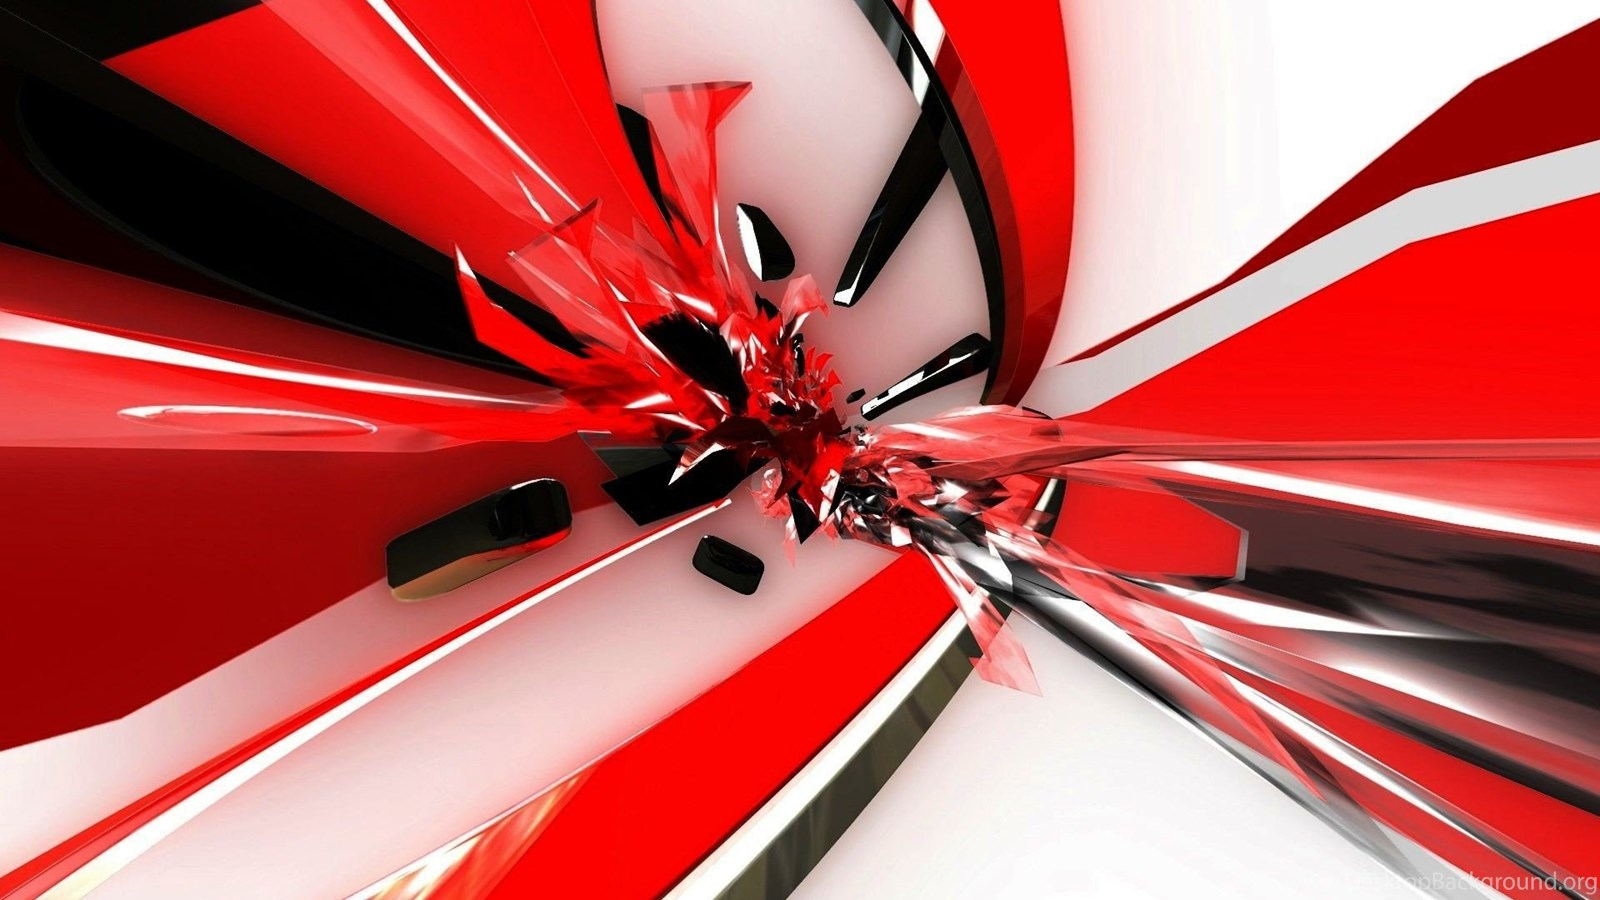 Red 3d Black White Backgrounds HD Wallpapers Desktop ...